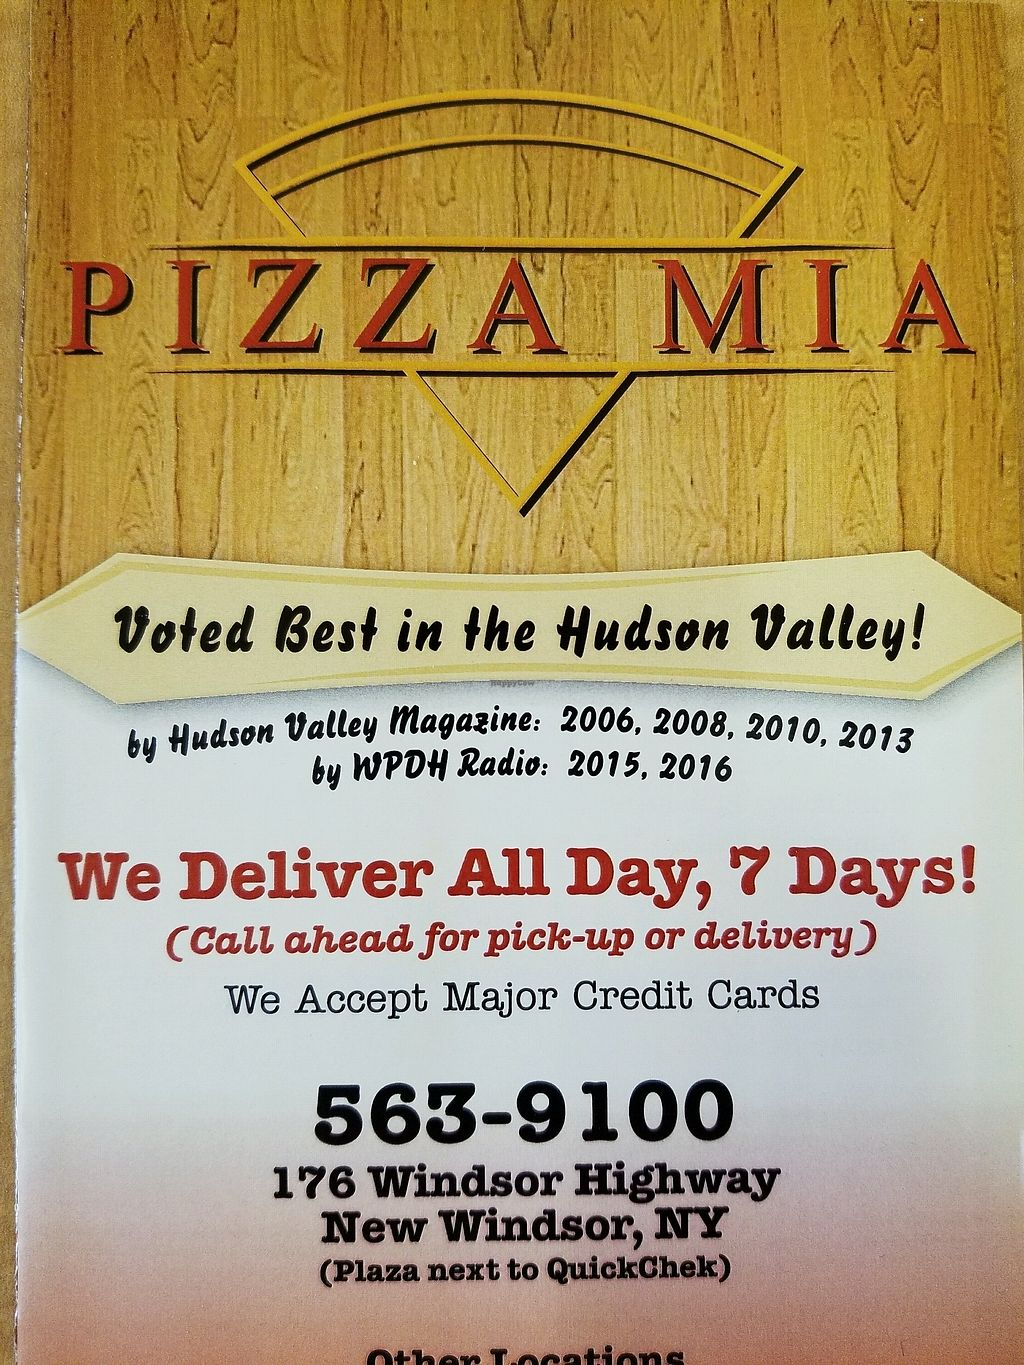 """Photo of Pizza Mia  by <a href=""""/members/profile/MichaelBarootjian"""">MichaelBarootjian</a> <br/>menu! <br/> December 30, 2017  - <a href='/contact/abuse/image/108250/340967'>Report</a>"""